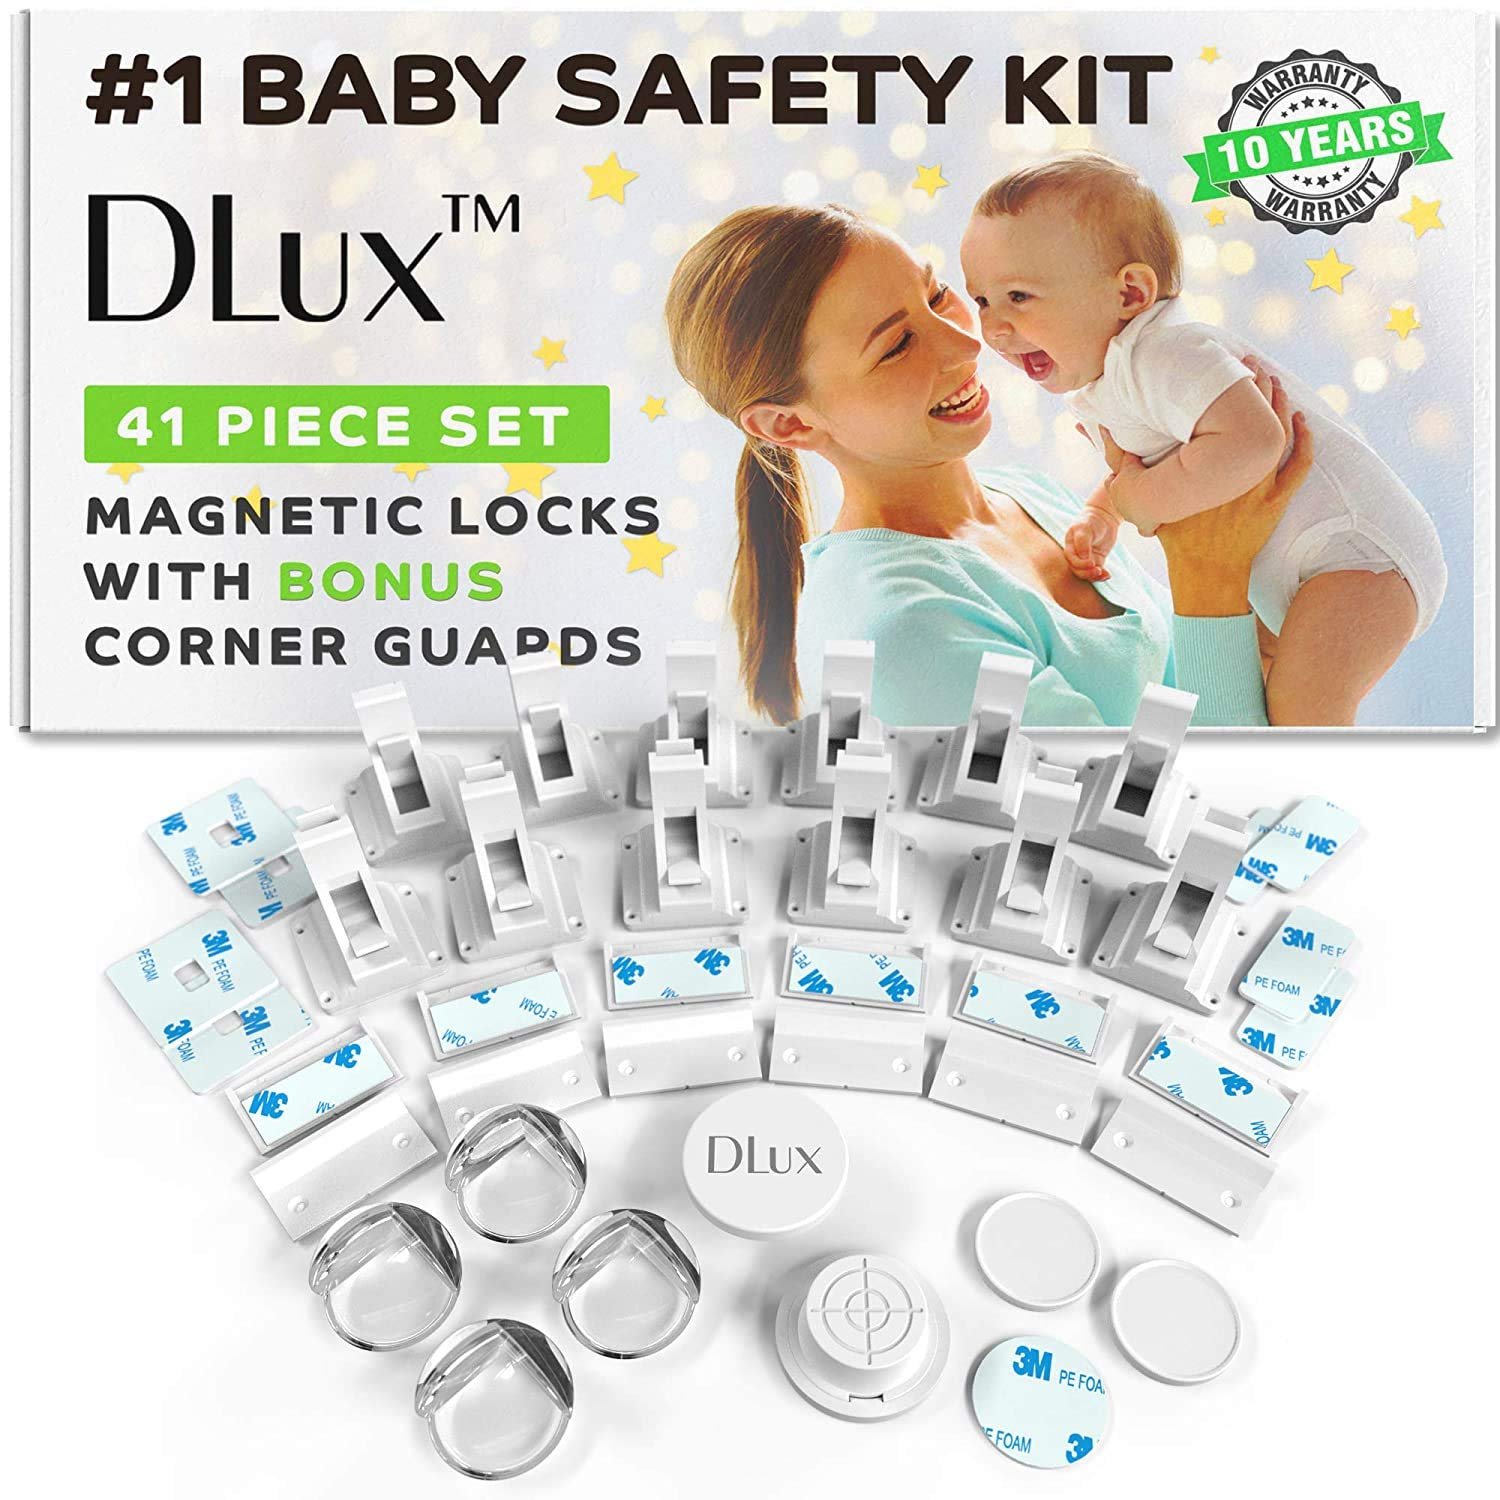 Magnetic Cabinet Locks Child Safety Weekly update Upgrad Kit New Colorado Springs Mall 41-Piece with